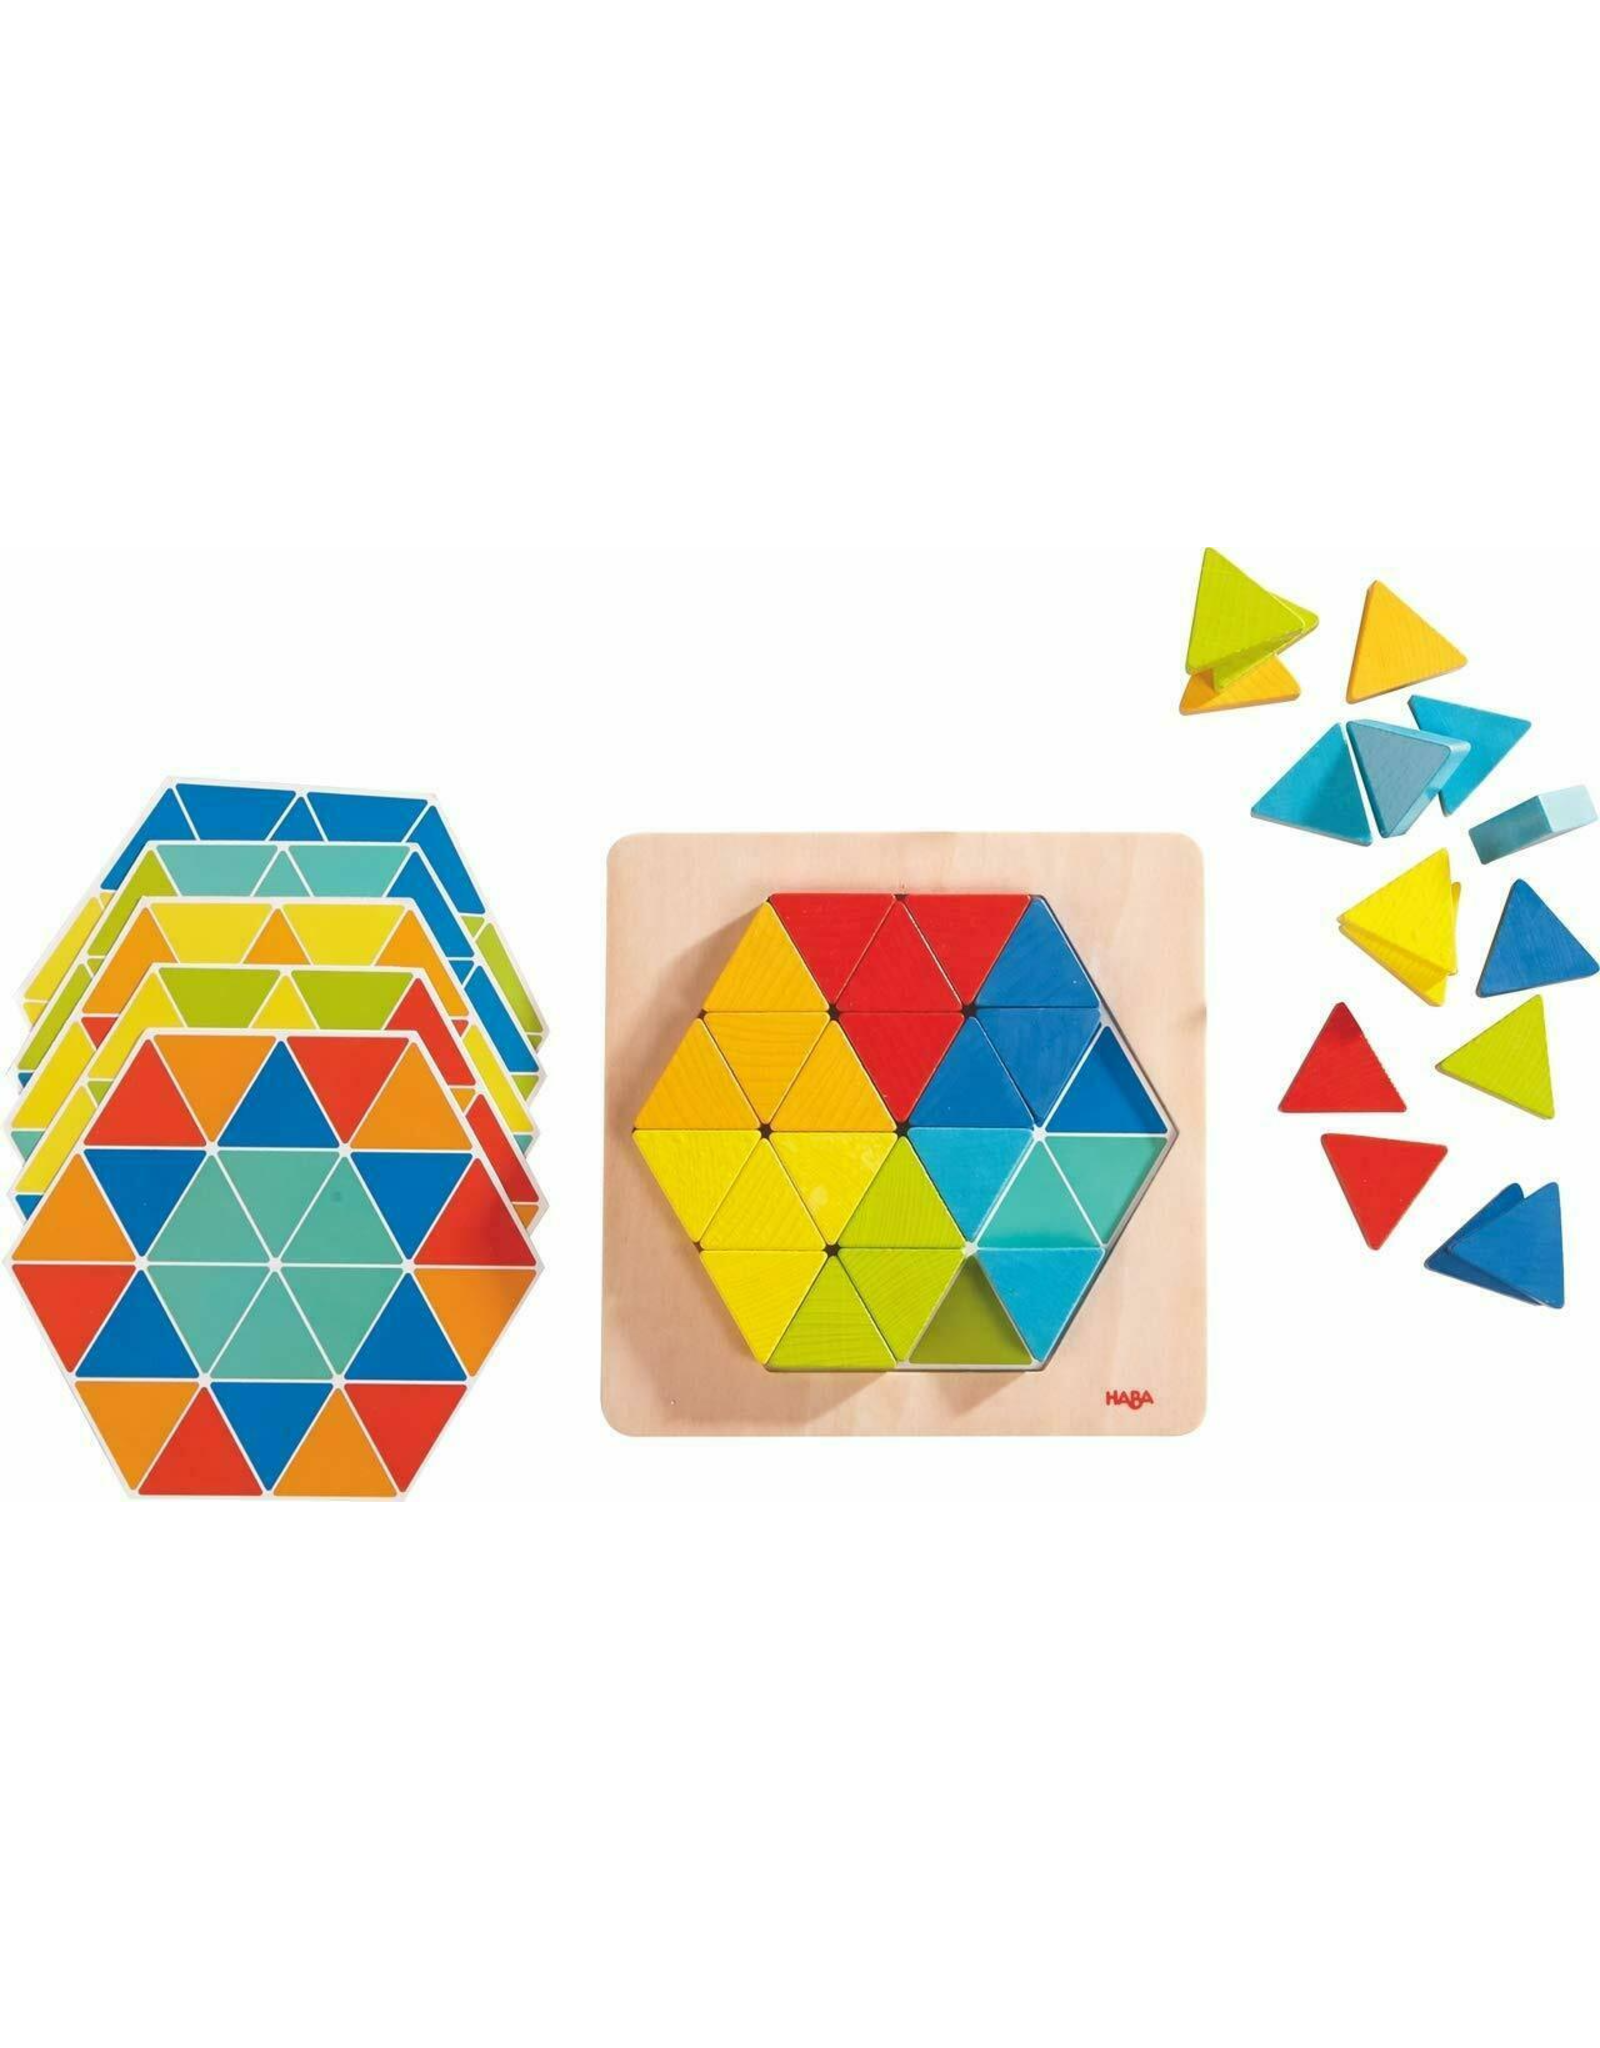 Haba Magical Pyramids